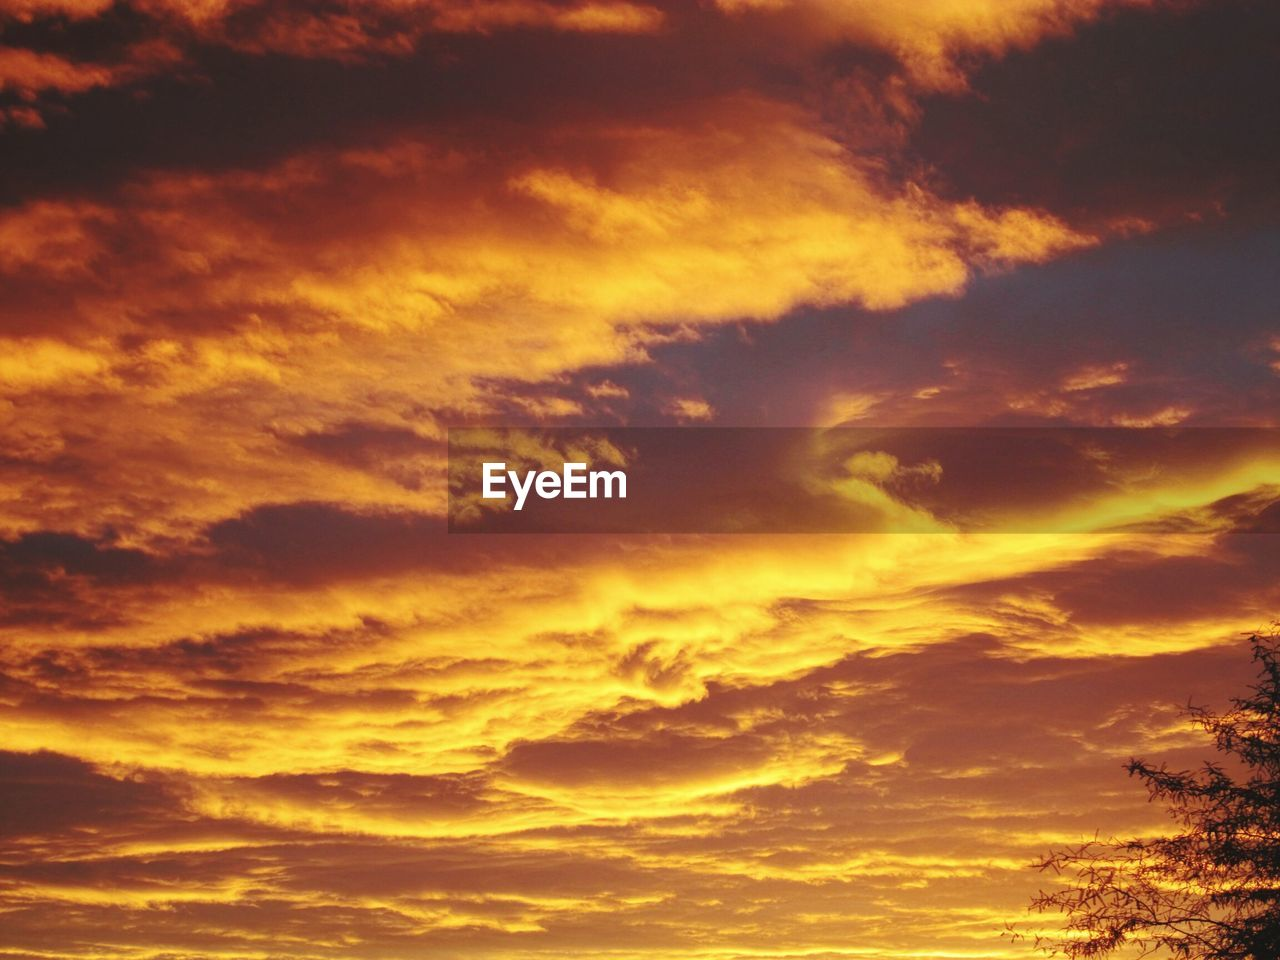 sunset, beauty in nature, nature, scenics, dramatic sky, orange color, idyllic, tranquil scene, sky, tranquility, majestic, cloud - sky, backgrounds, no people, sky only, awe, yellow, outdoors, low angle view, sunlight, day